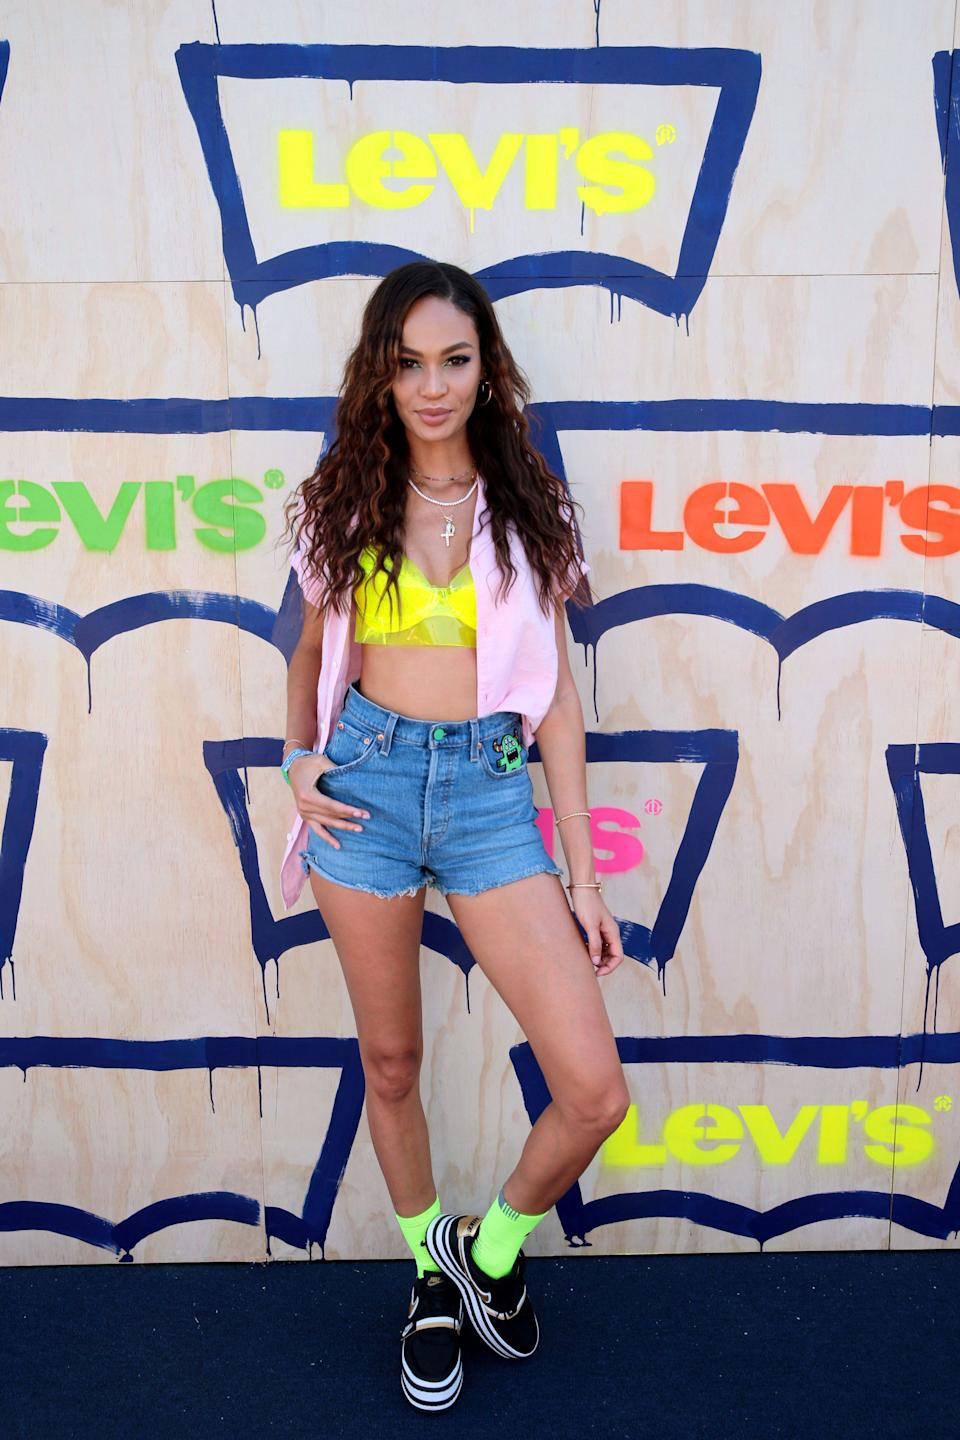 Joan Smalls at Levi's in the Desert 2019 Coachella party in Indian Wells, CA (Photo: Levi's)